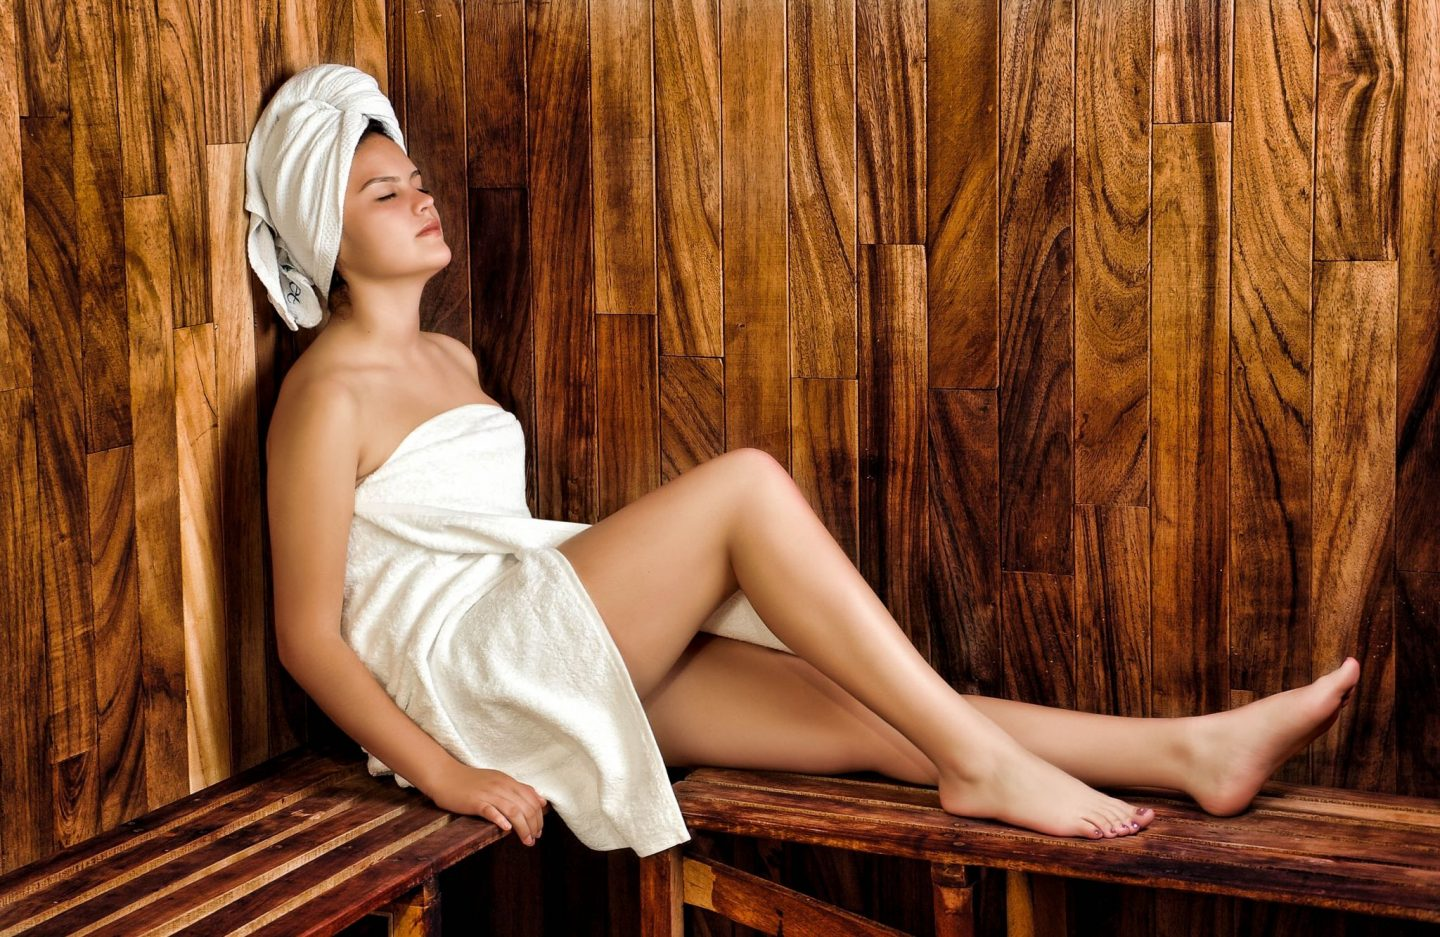 Manage-Your-Stress-Improve-Your-Life-Beauty-Relaxation